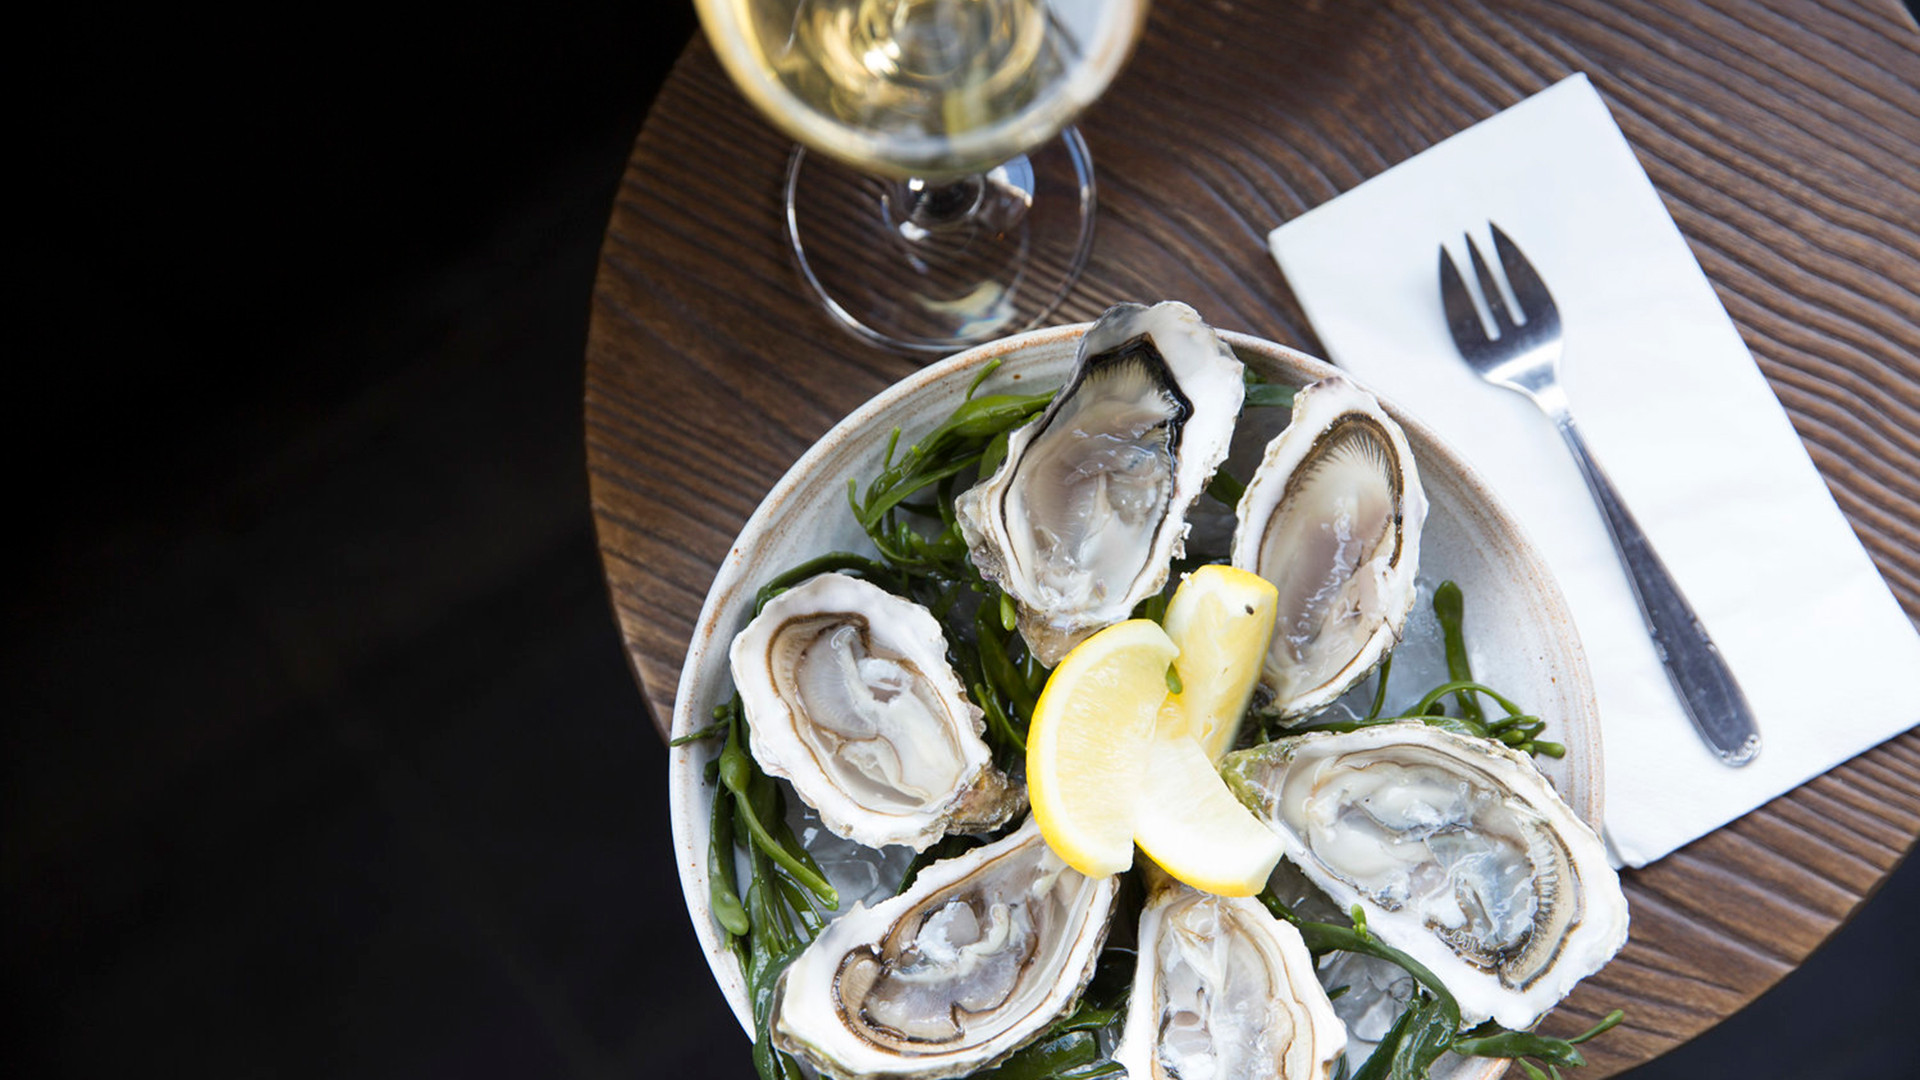 Oysters from The Remedy